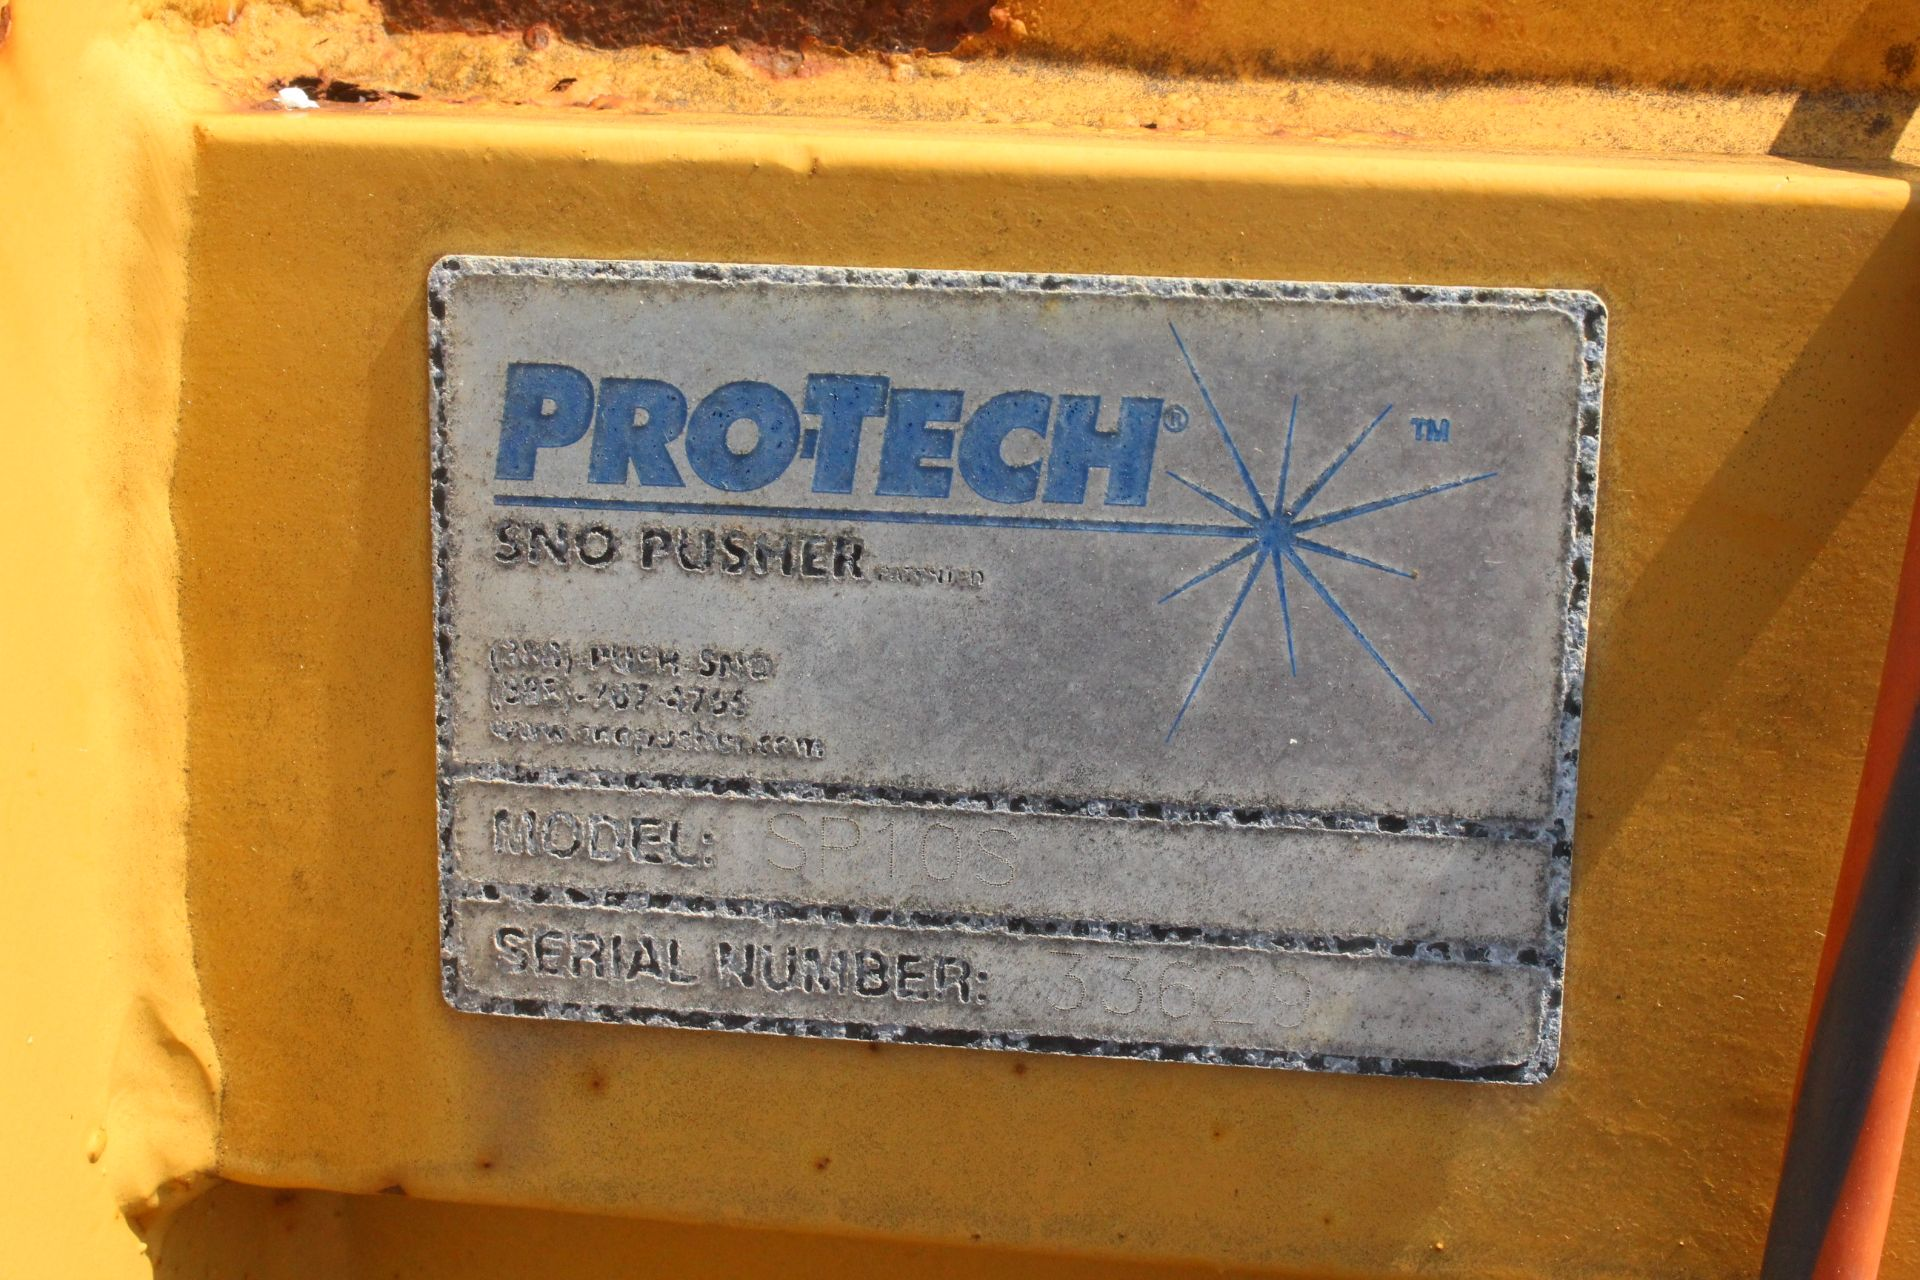 Lot 14 - PROTECH PRO TECH 10FT SWITCH BLADE SNOW PUSHER SKID STEER ATTACHMENT